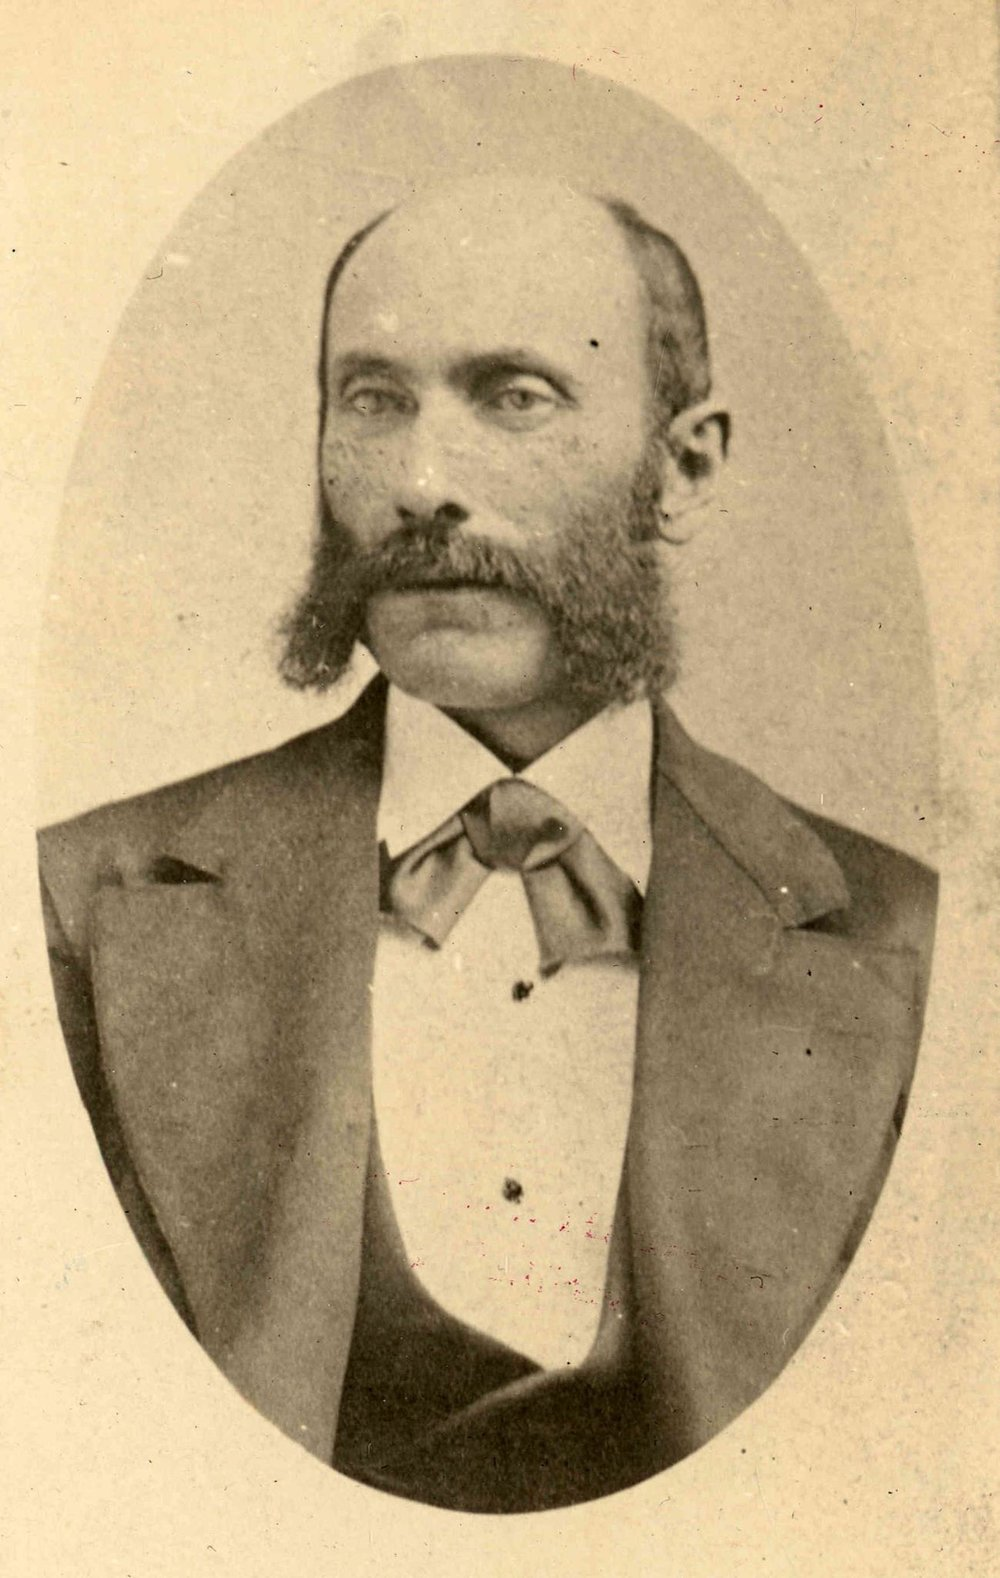 JOSHUA ABRAHAM NORTON in about 1851, at the height of his wealth. Collection of The Society of California Pioneers.